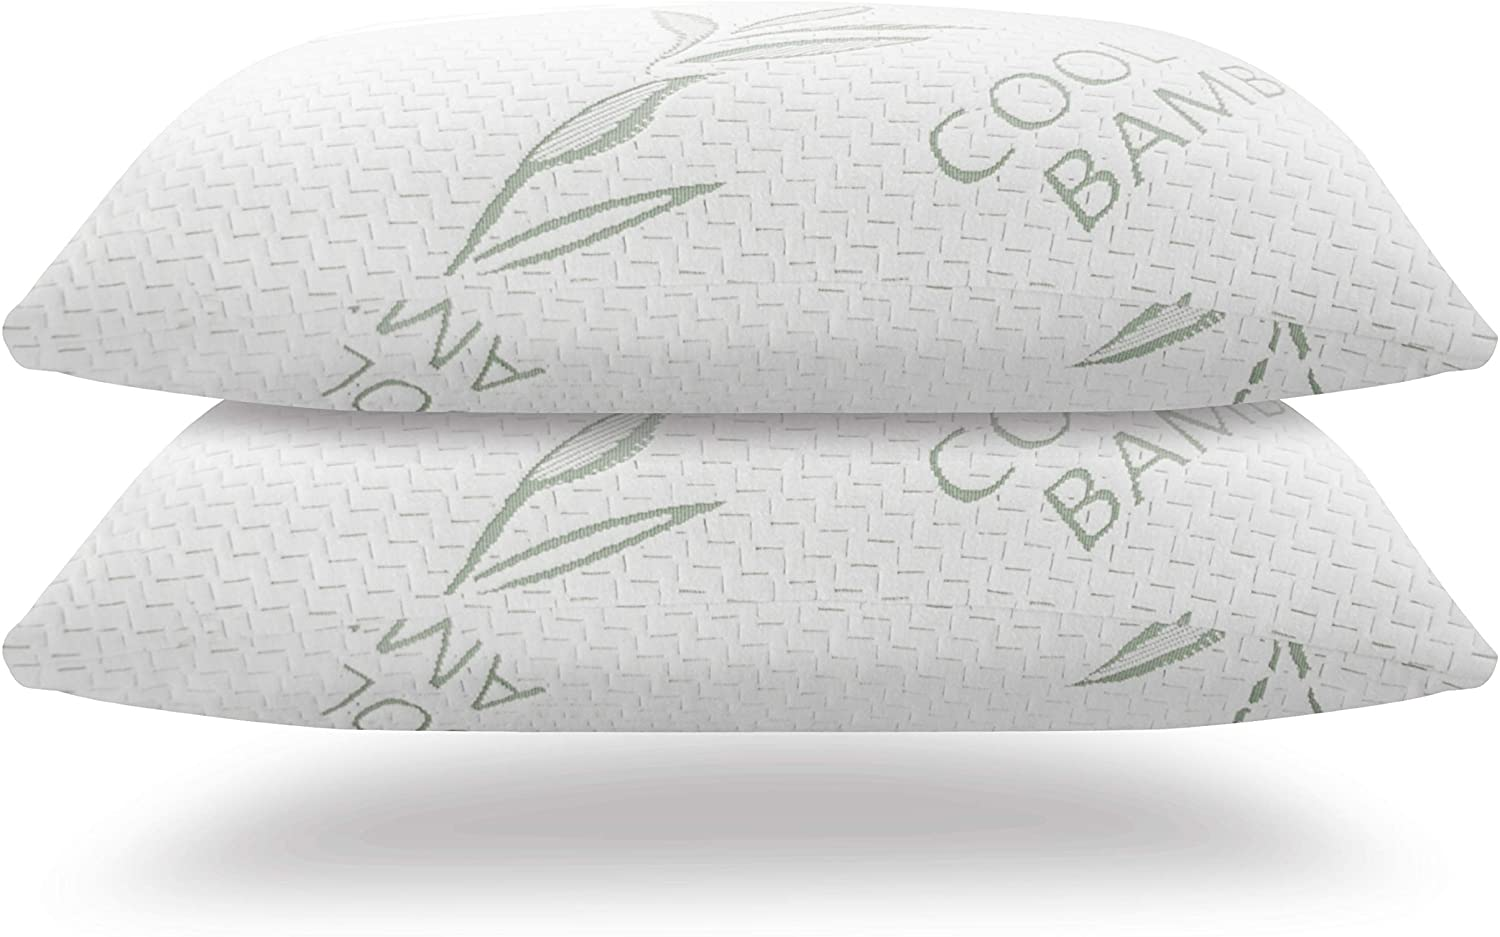 Handua Premium [King Size 2 Pack] Adjustable Loft Bamboo Pillow with Shredded Memory Foam | Back, Stomach, Side Sleeper | Bed Pillows for Sleeping | Hotel Down Alternative King Pillows Set of 2